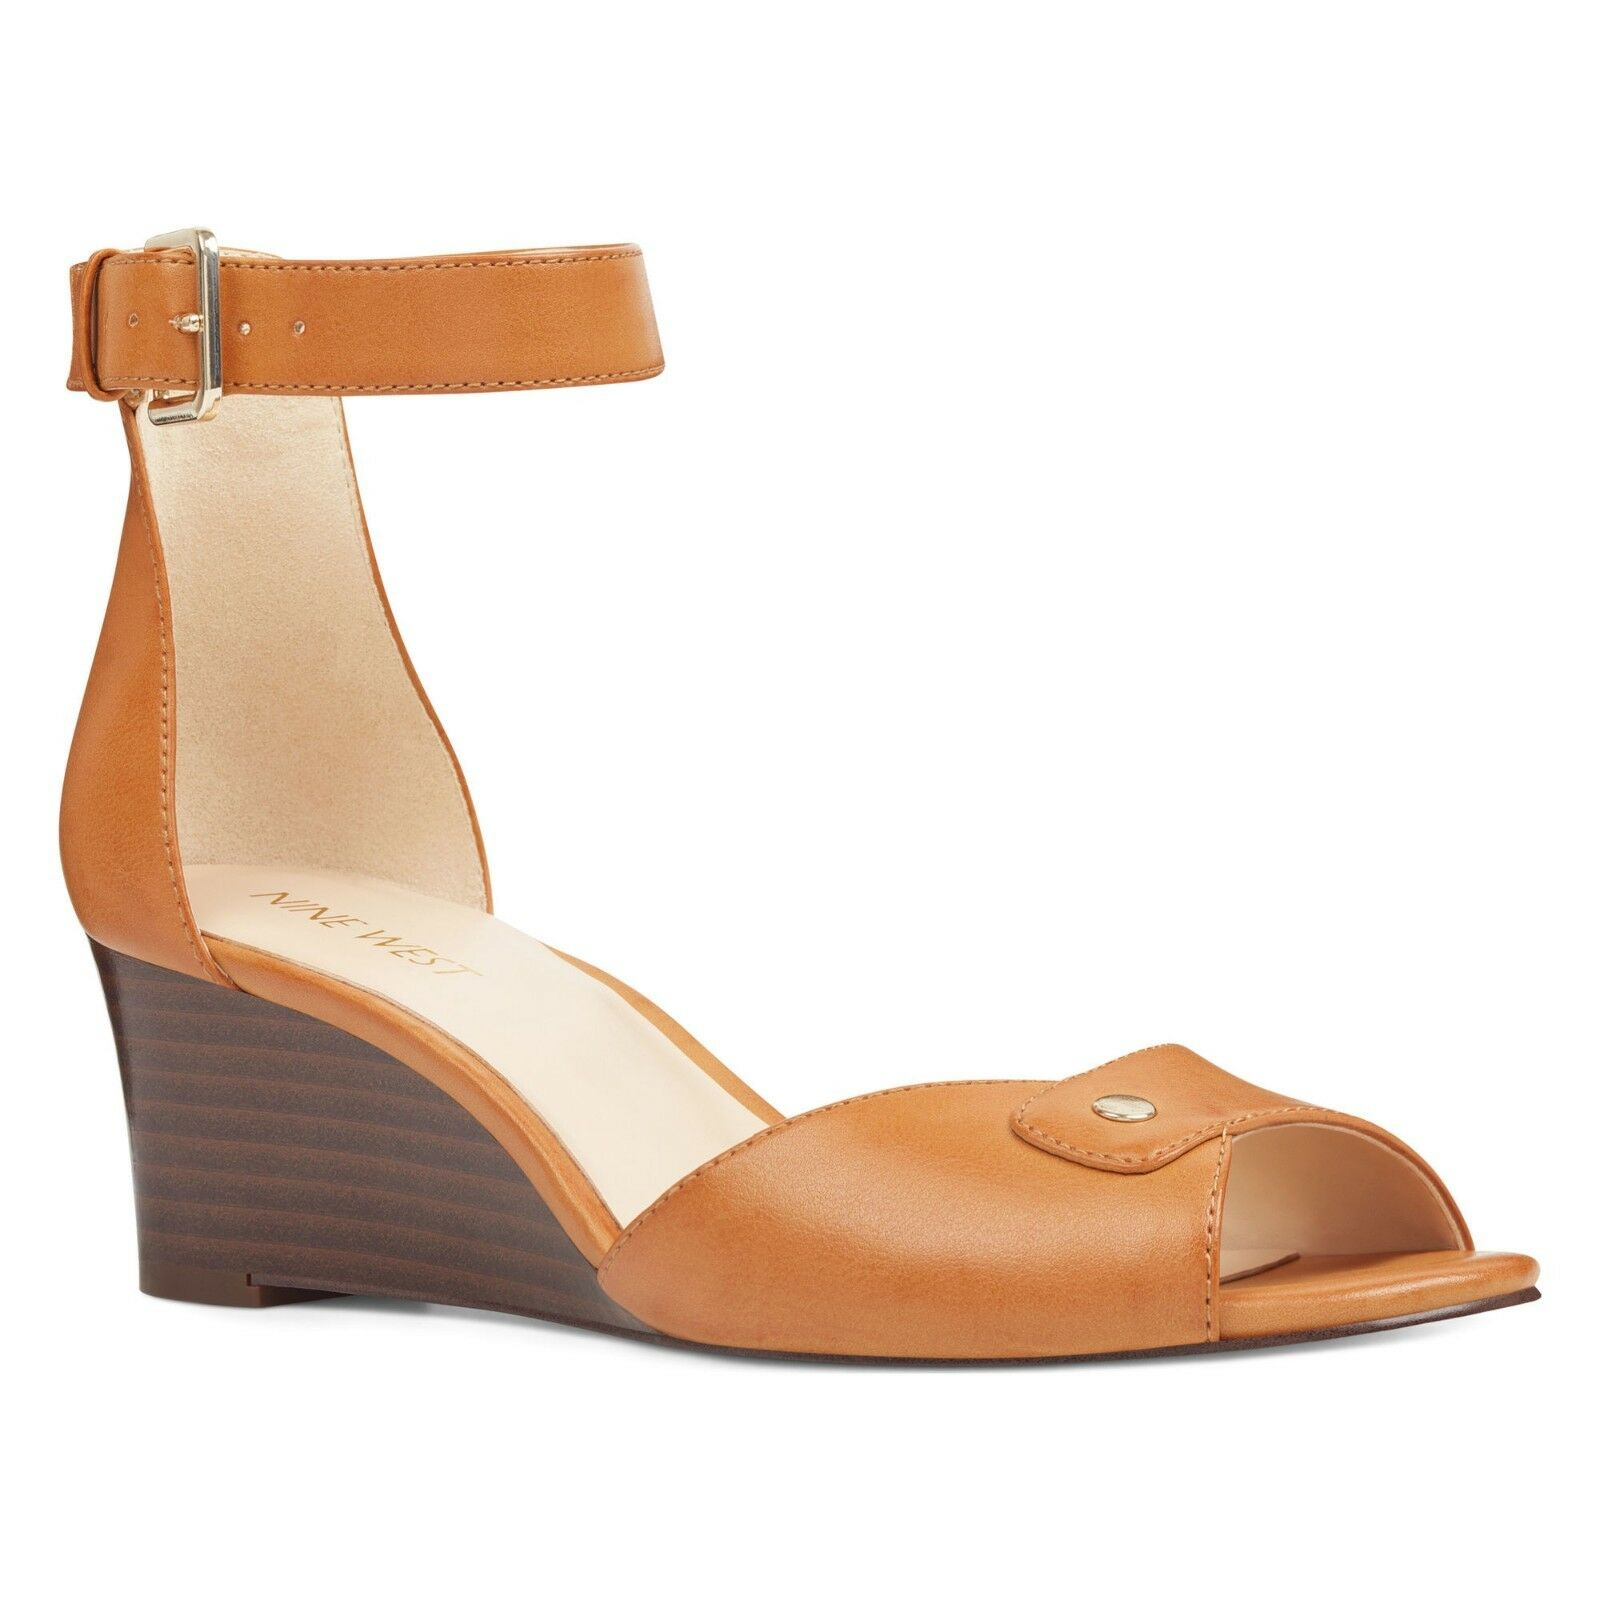 Nine West Patiam Wedge Sandales 8.5 M